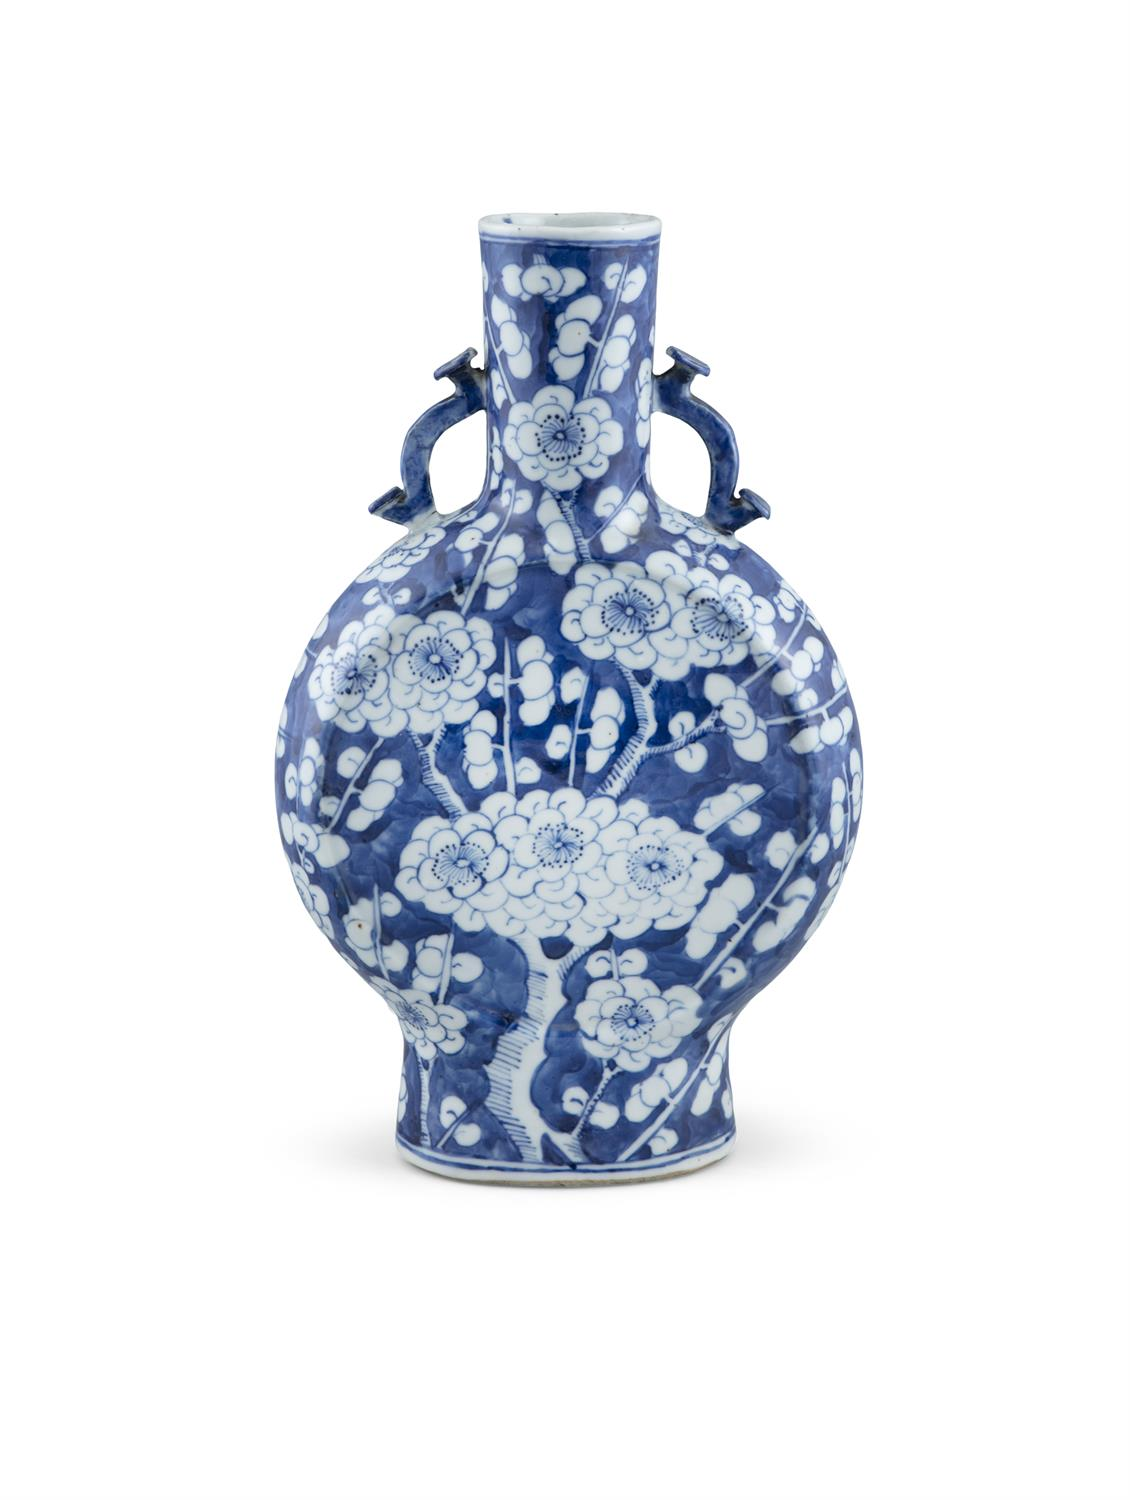 A CHINESE BLUE AND WHITE MOON FLASK, 19th century, of flattened baluster form with cylindrical neck